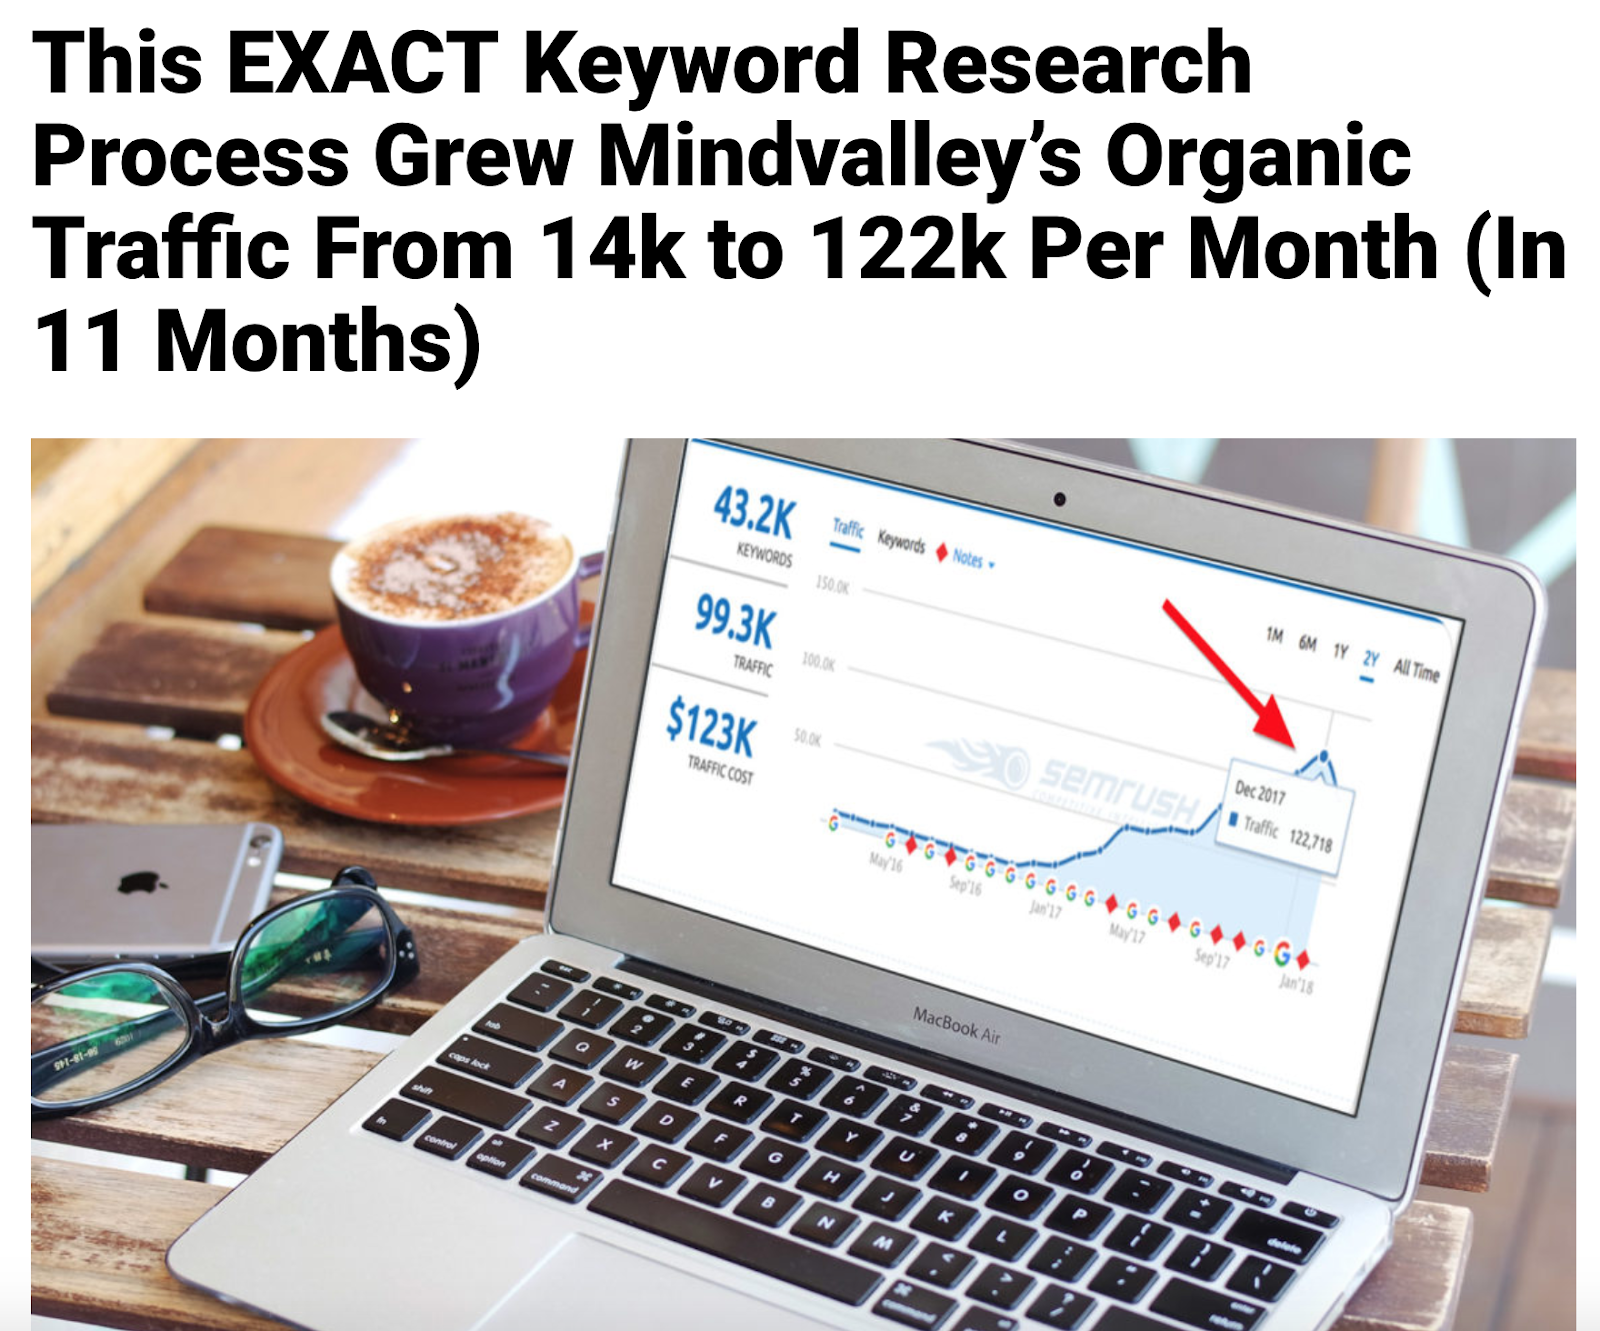 This EXACT Keyword Research Process Grew Mindvalley's Organic Traffic from 14k to 122k per month